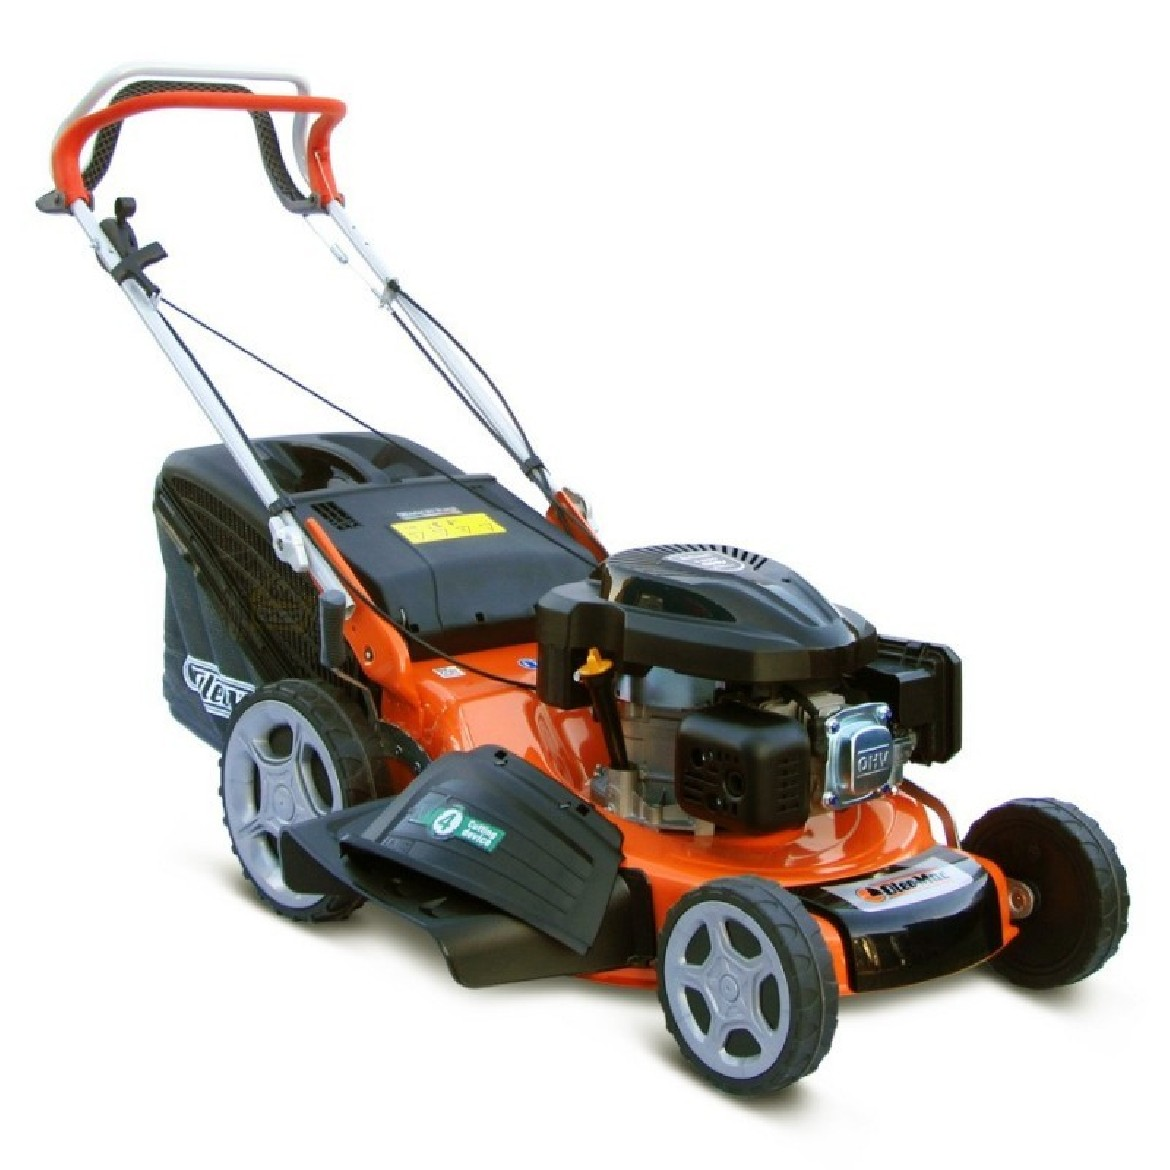 kosiarka.pl - the best place to buy a lawn mower online!